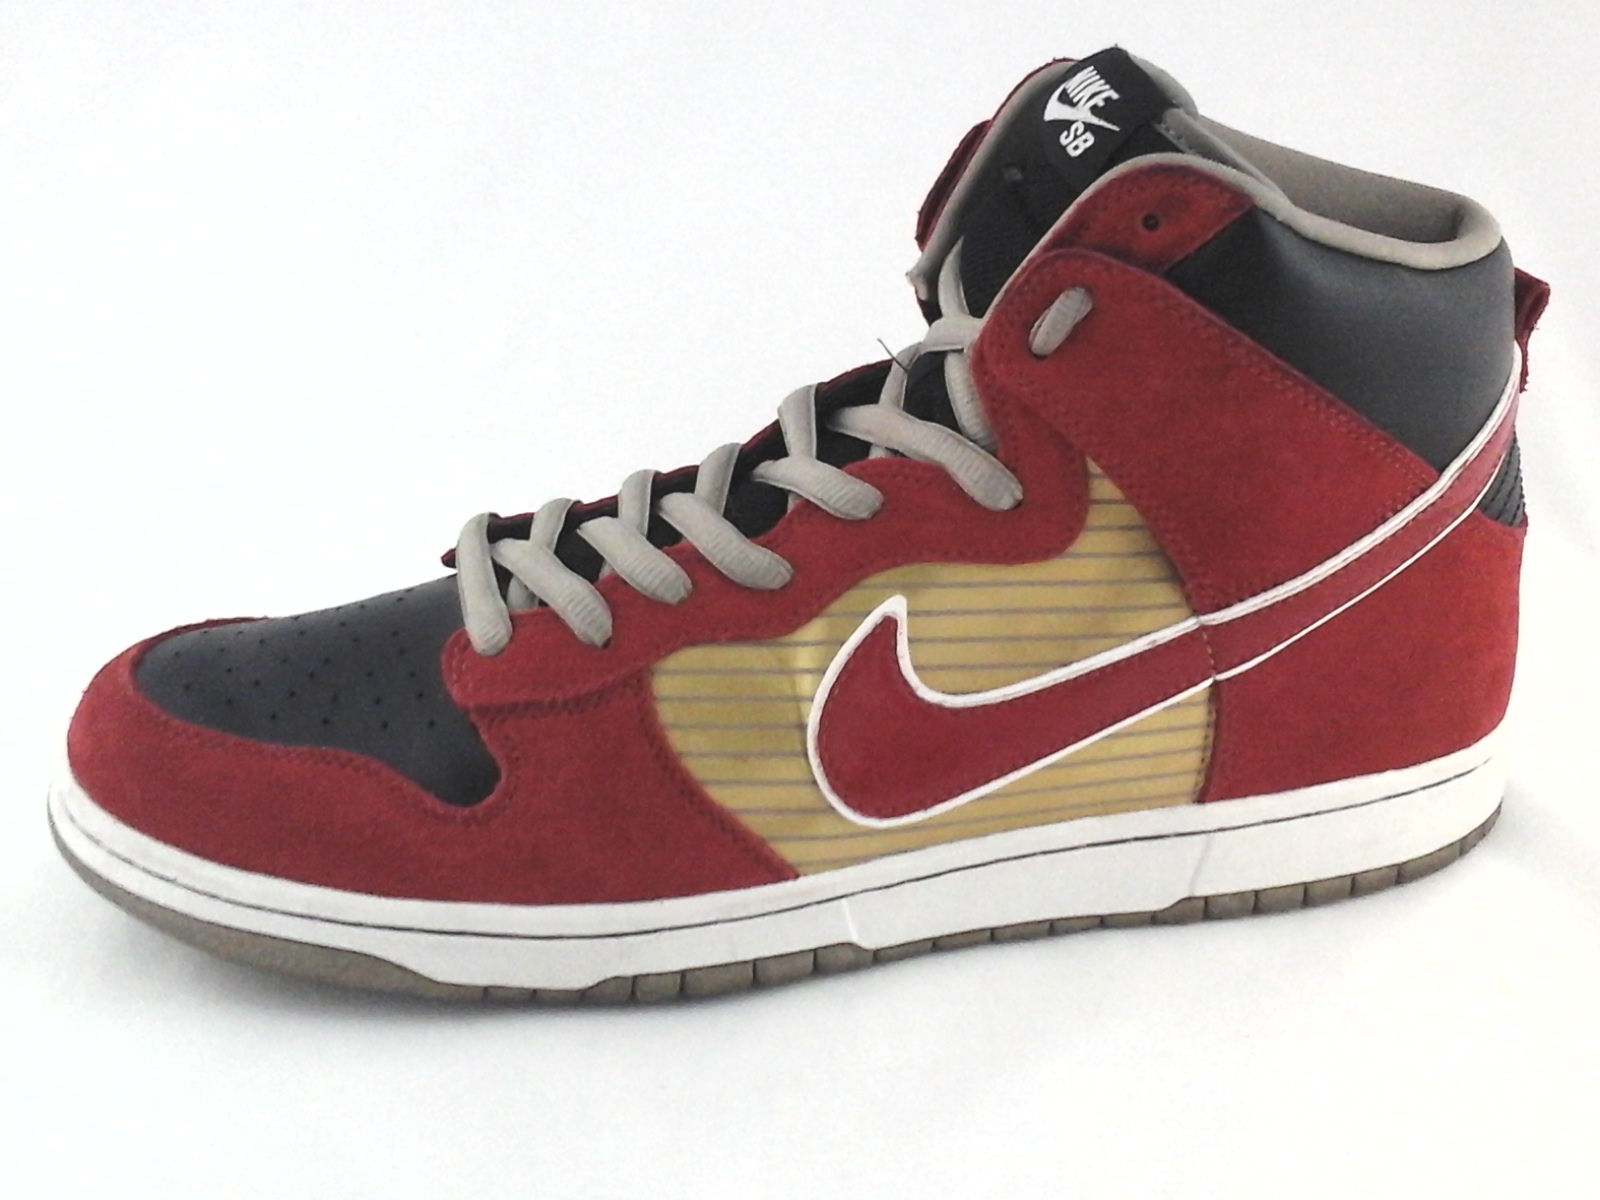 14c9cbf224a1 Details about NIKE SB High Top Shoes Red Gold Black 305050-701 Sneakers  Men s US 13  47.5 RARE